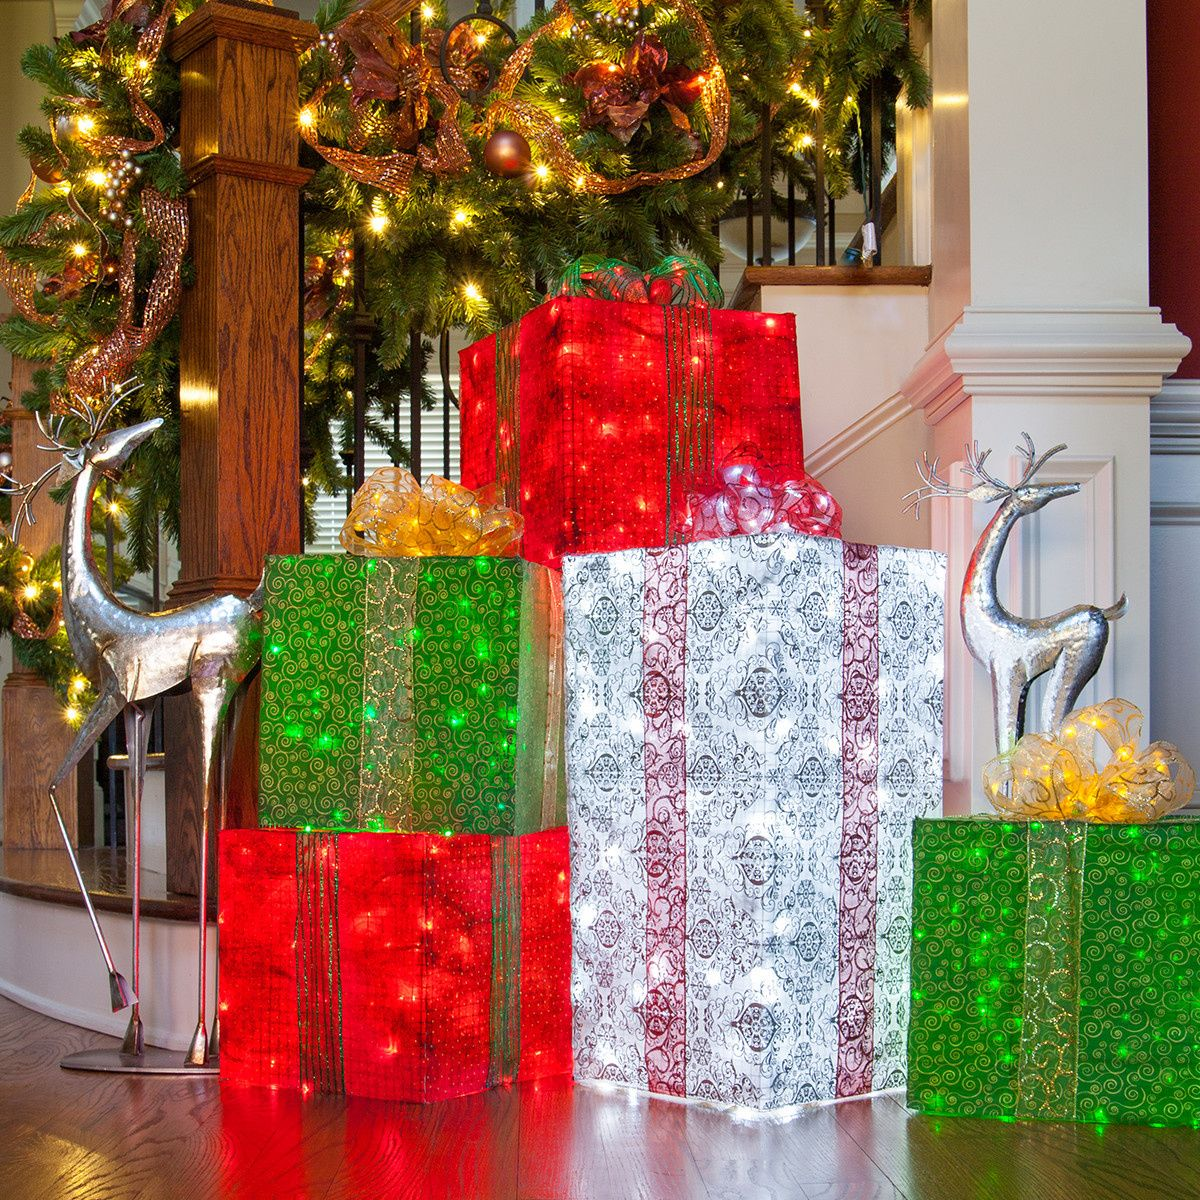 DIY Christmas Decorations 4 Lighted Gift Boxes Diy